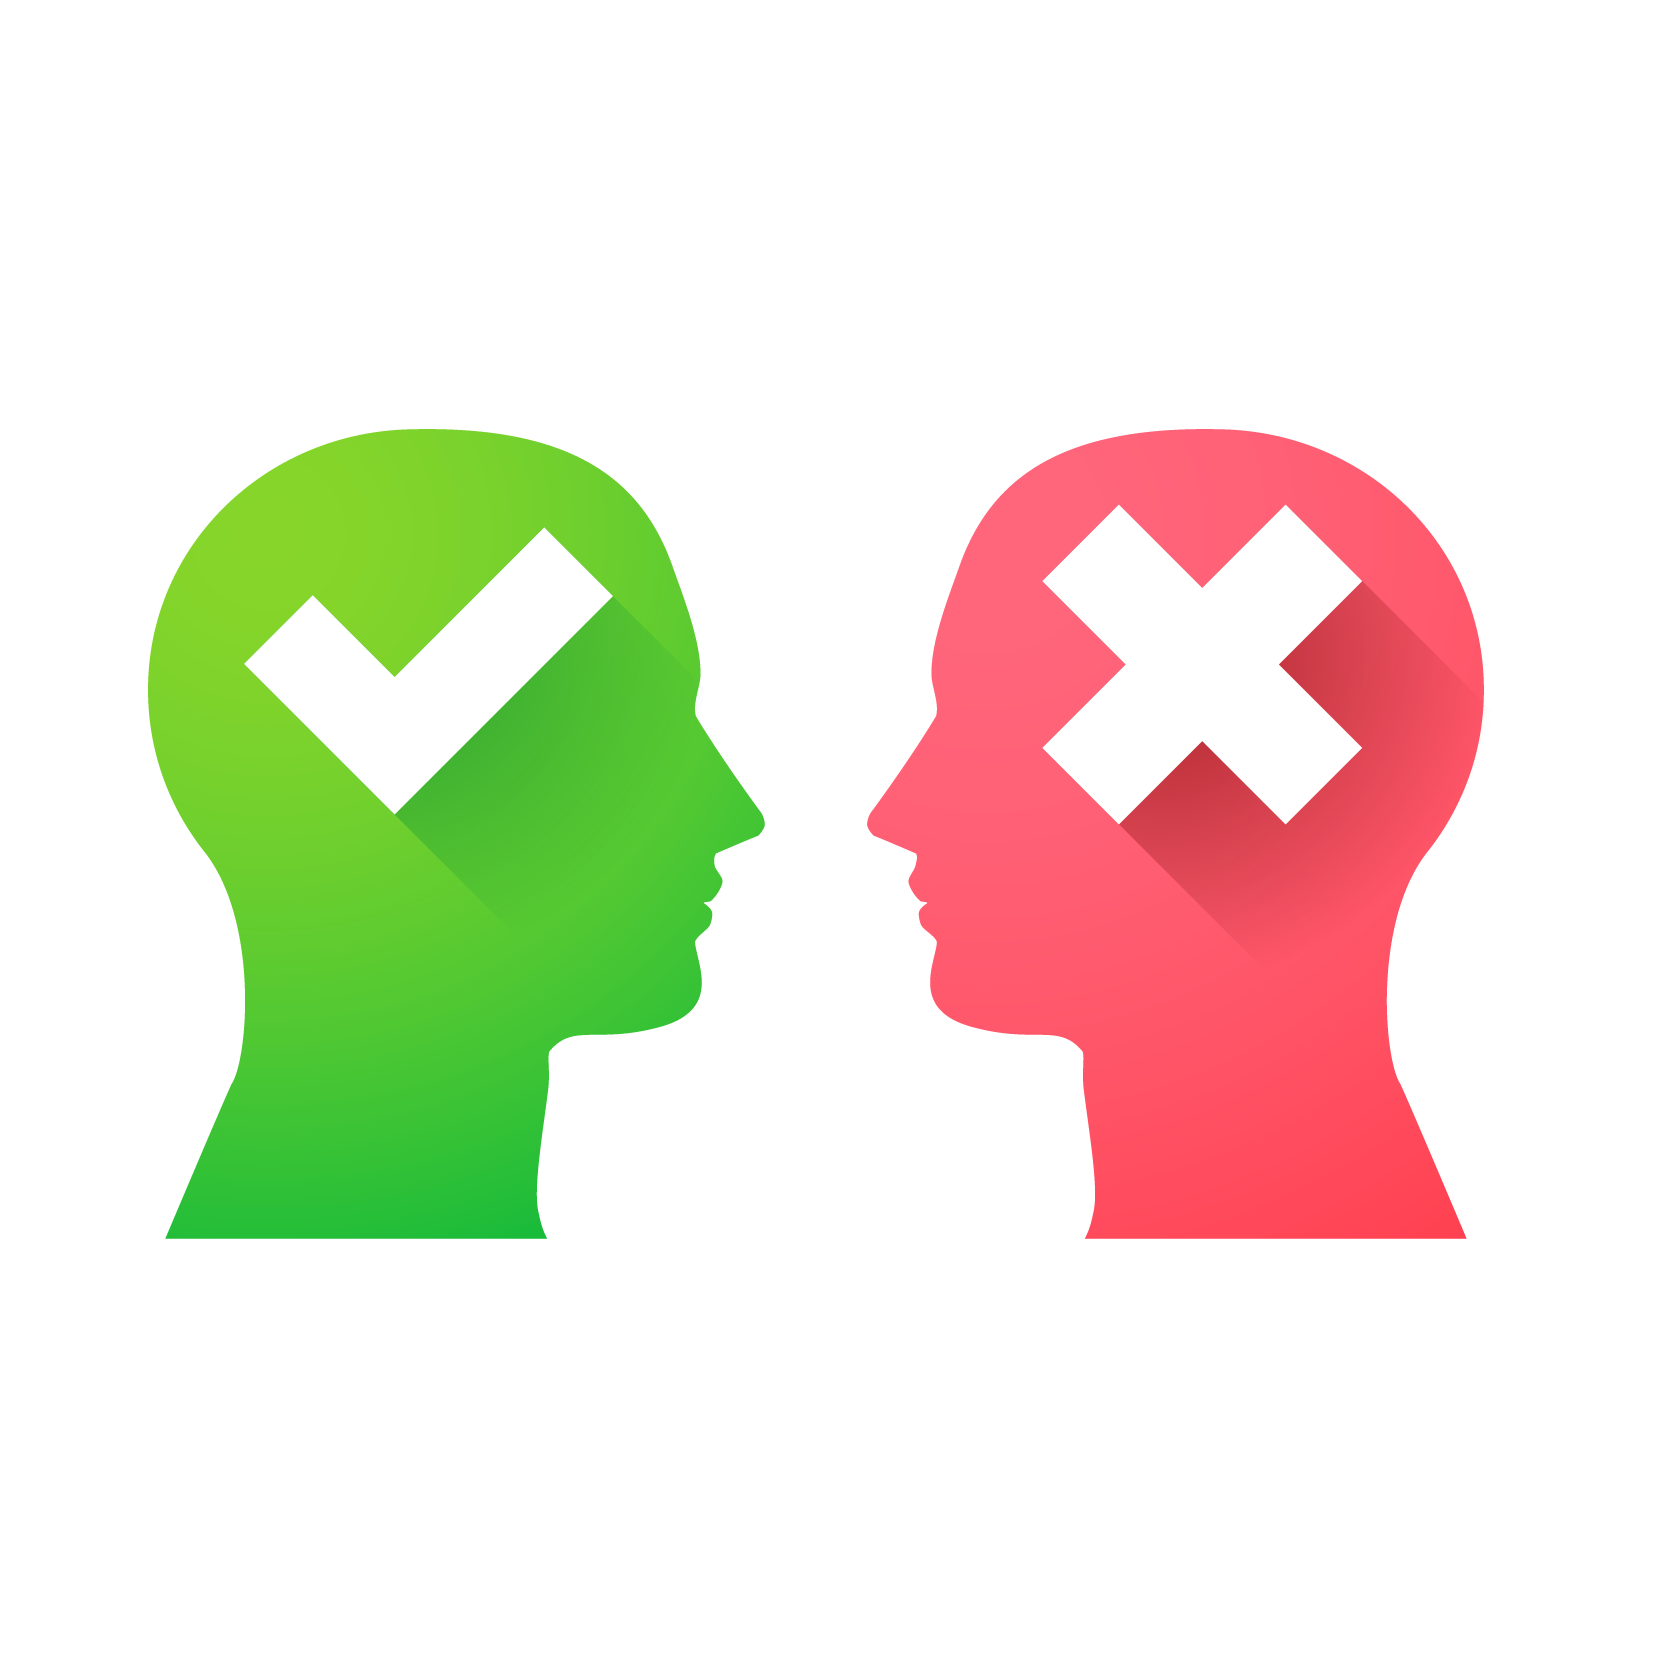 Illustration of two heads one is green with a checkmark and one is red with an x